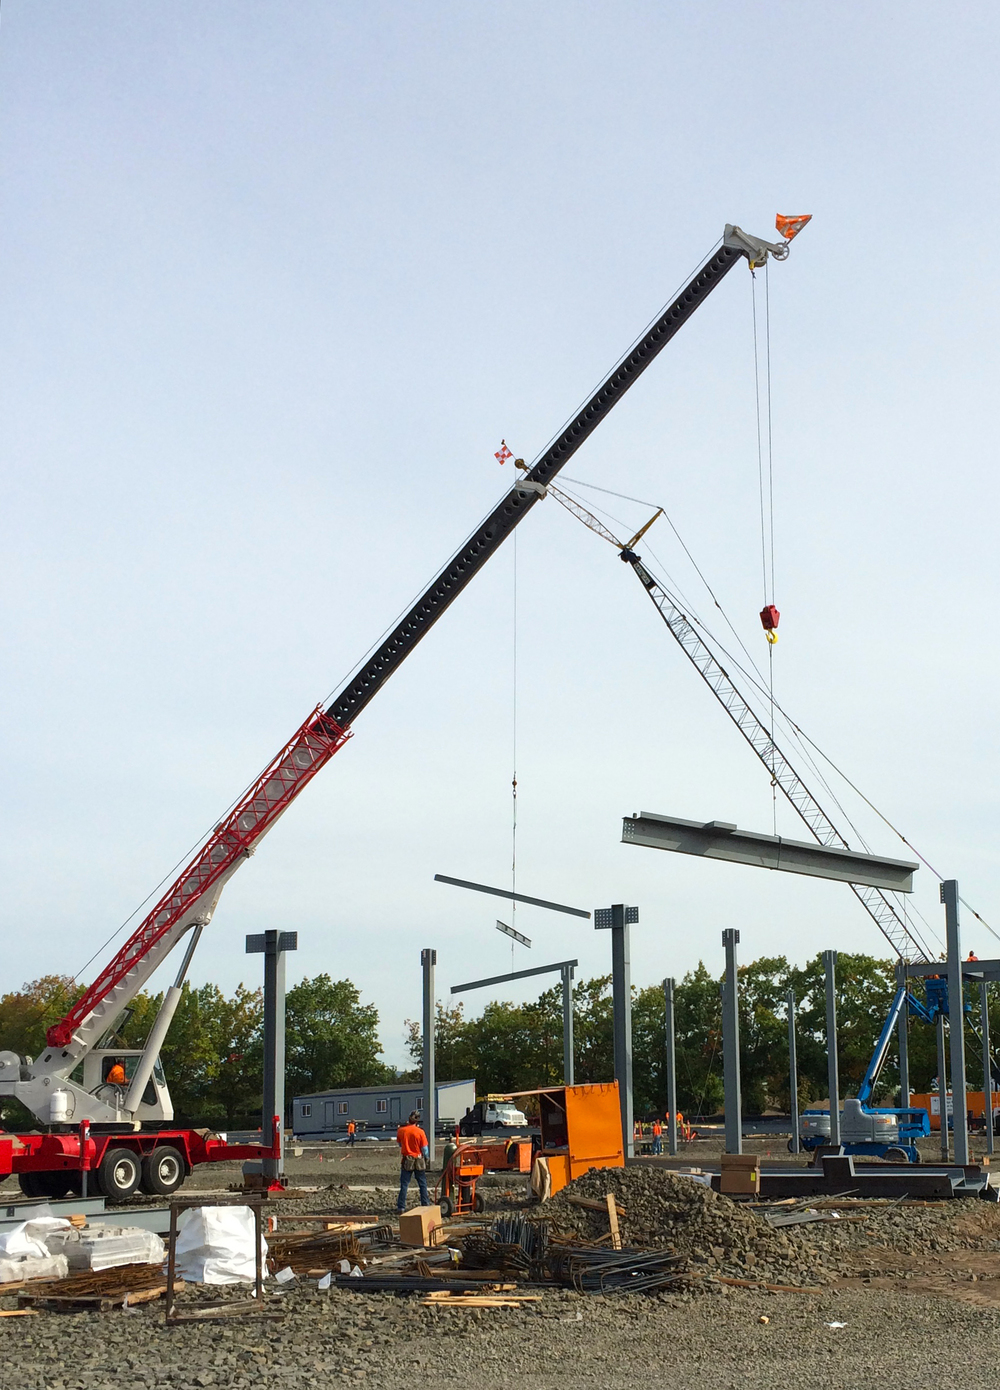 t5-hillsboro-data-center-mission-critical-rf-stearns-structural-steel-construction-4.jpg